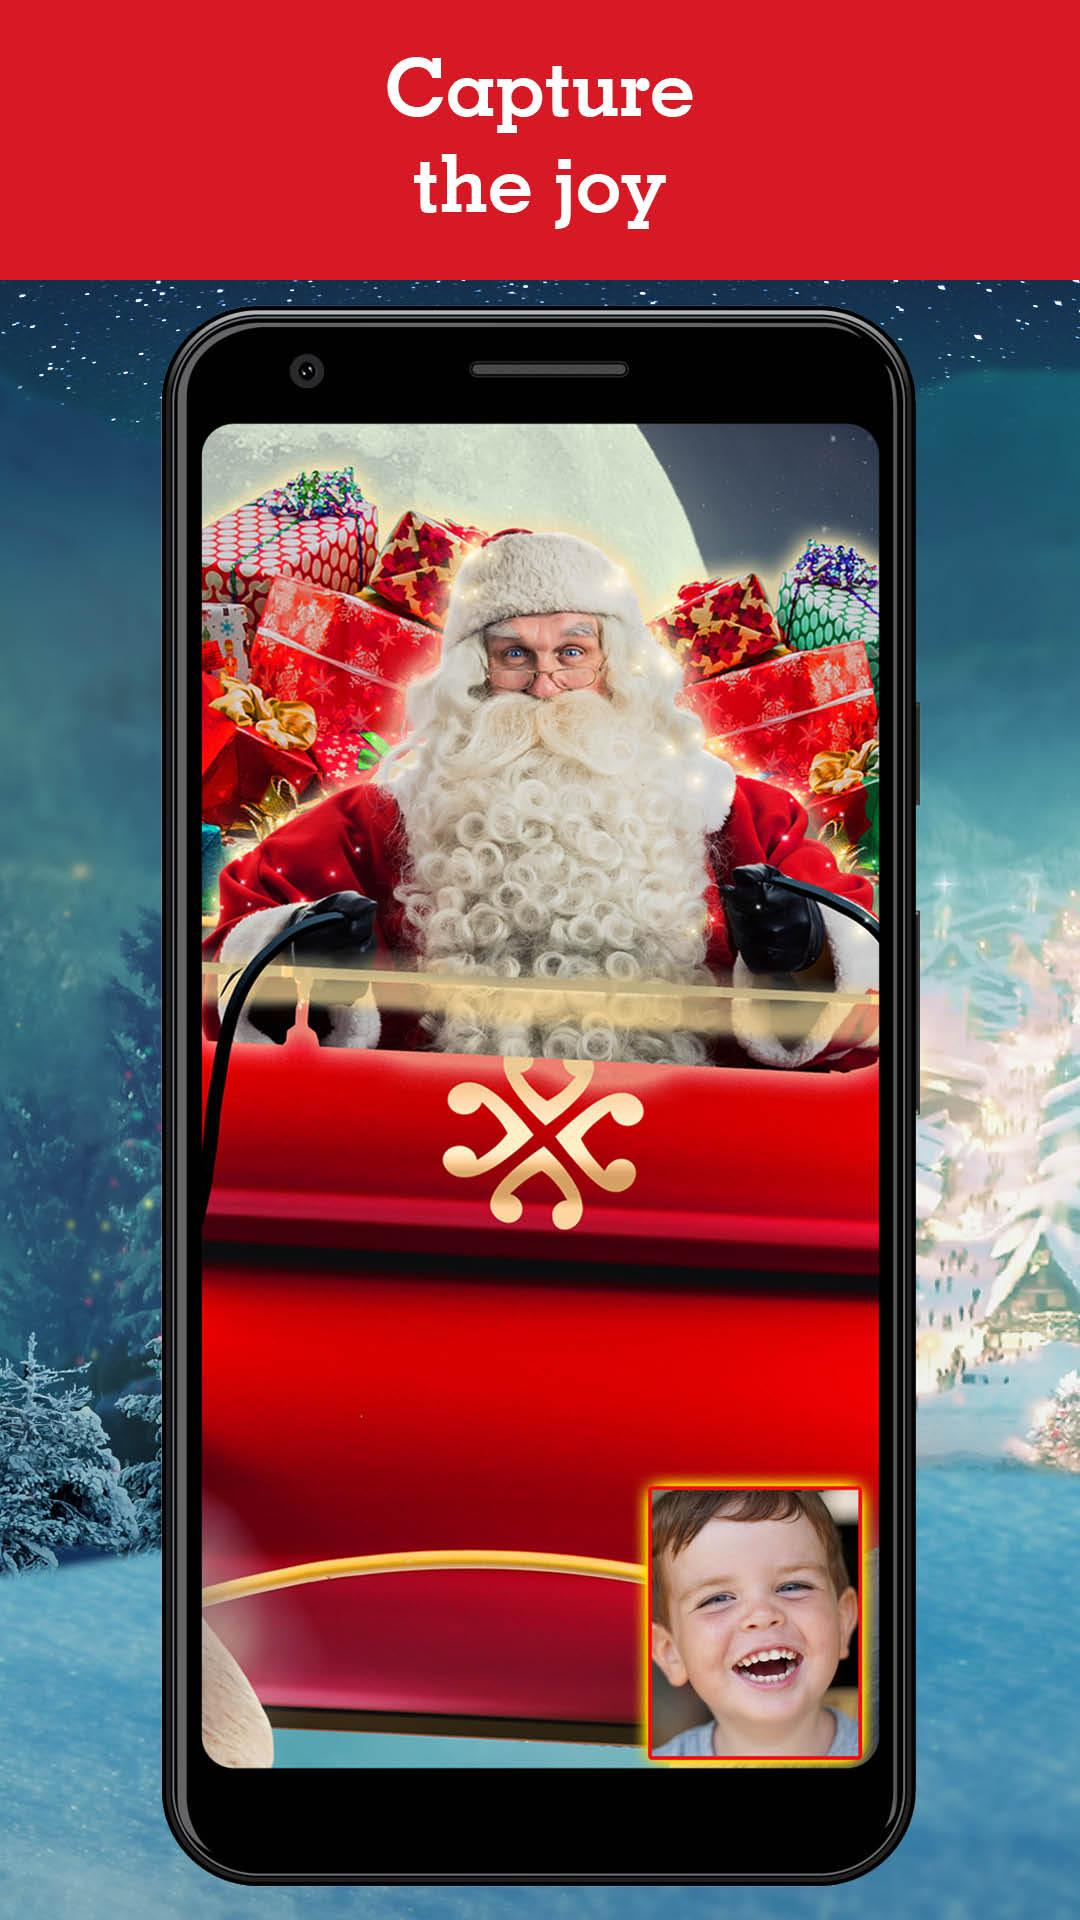 Pnp Santa Christmas Message 2021 Pnp Portable North Pole Calls Videos From Santa For Android Apk Download